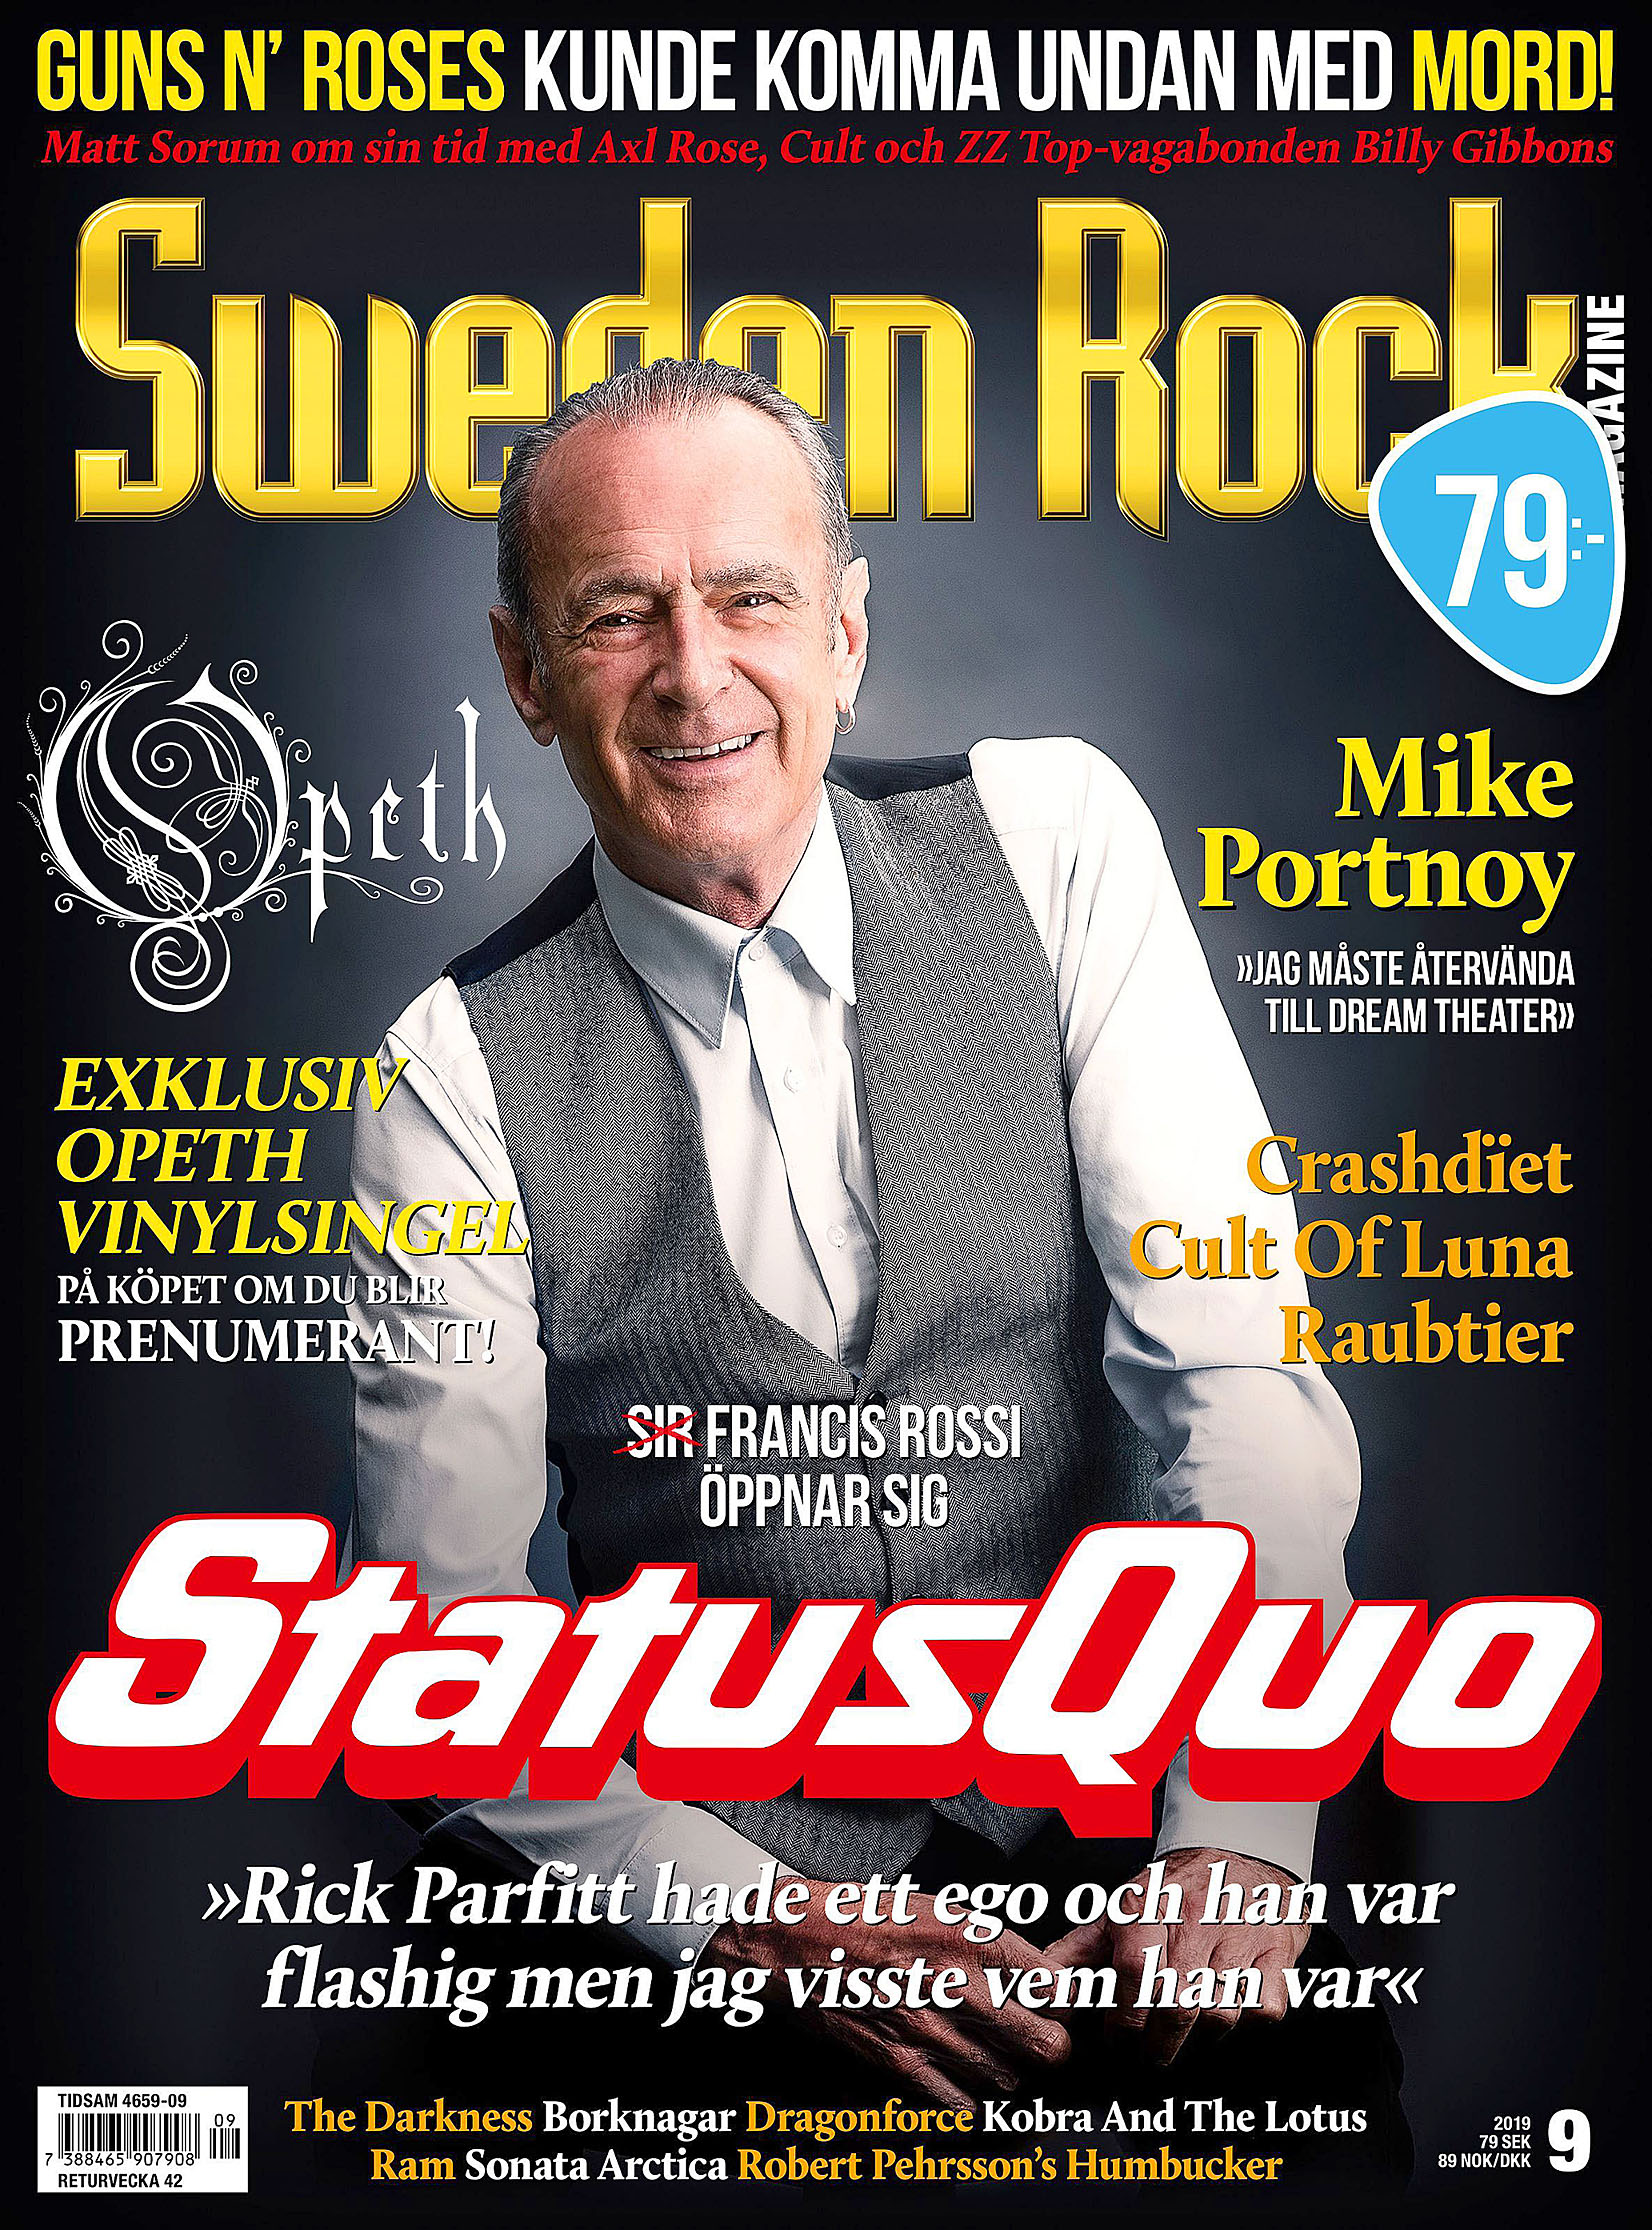 Sweden Rock Magazine 2019-09.jpg